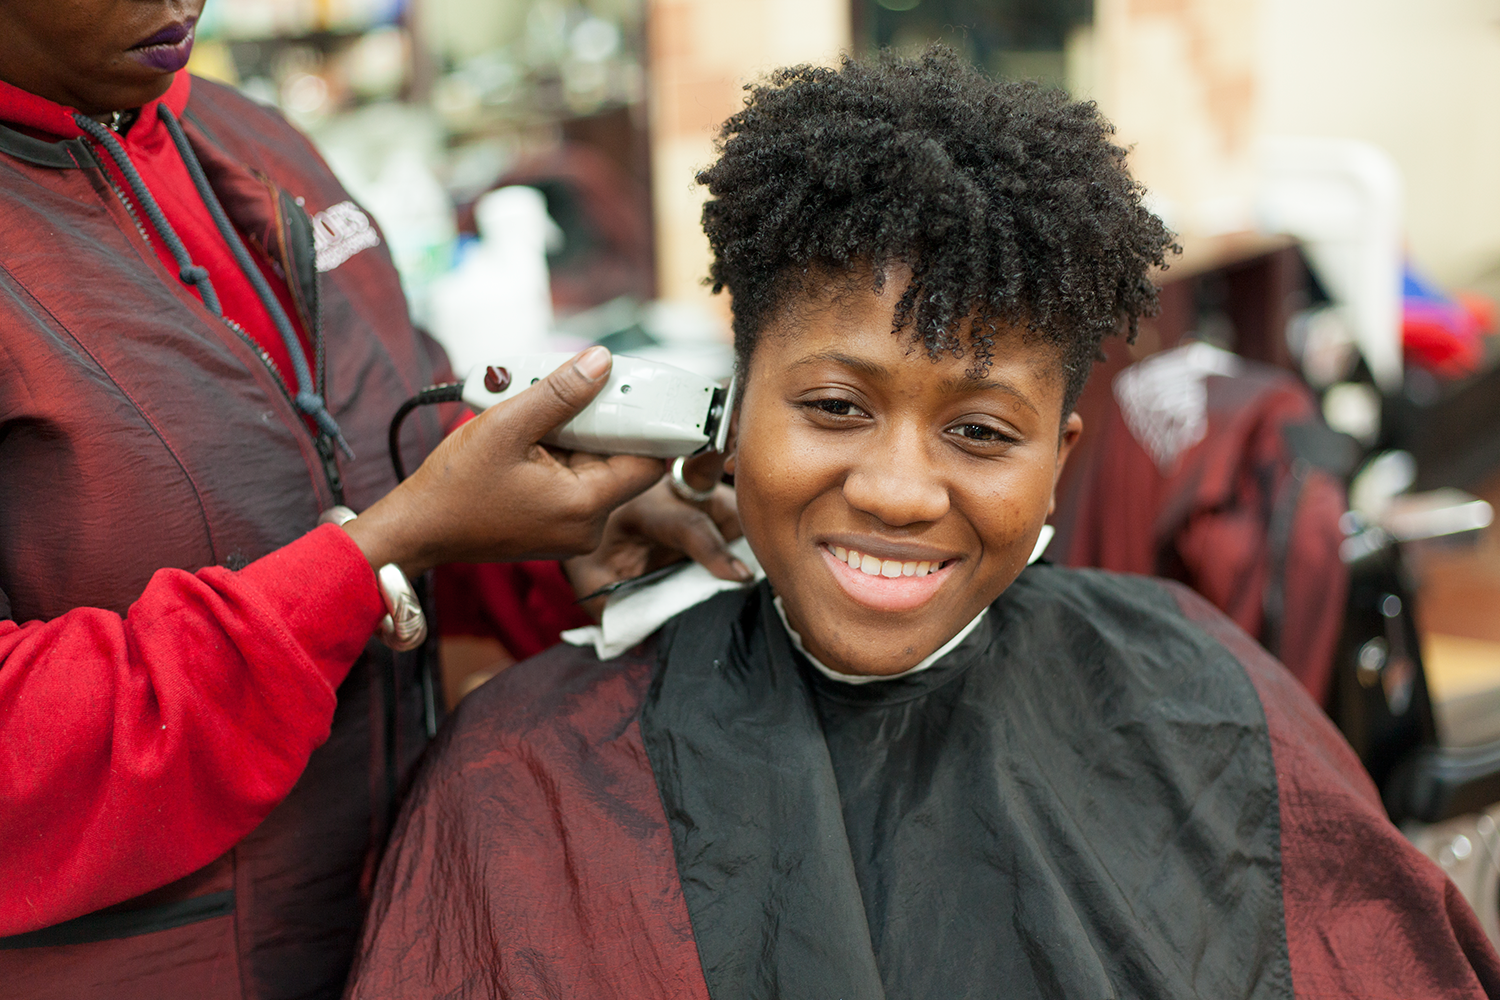 Happiness in a barber's chair.